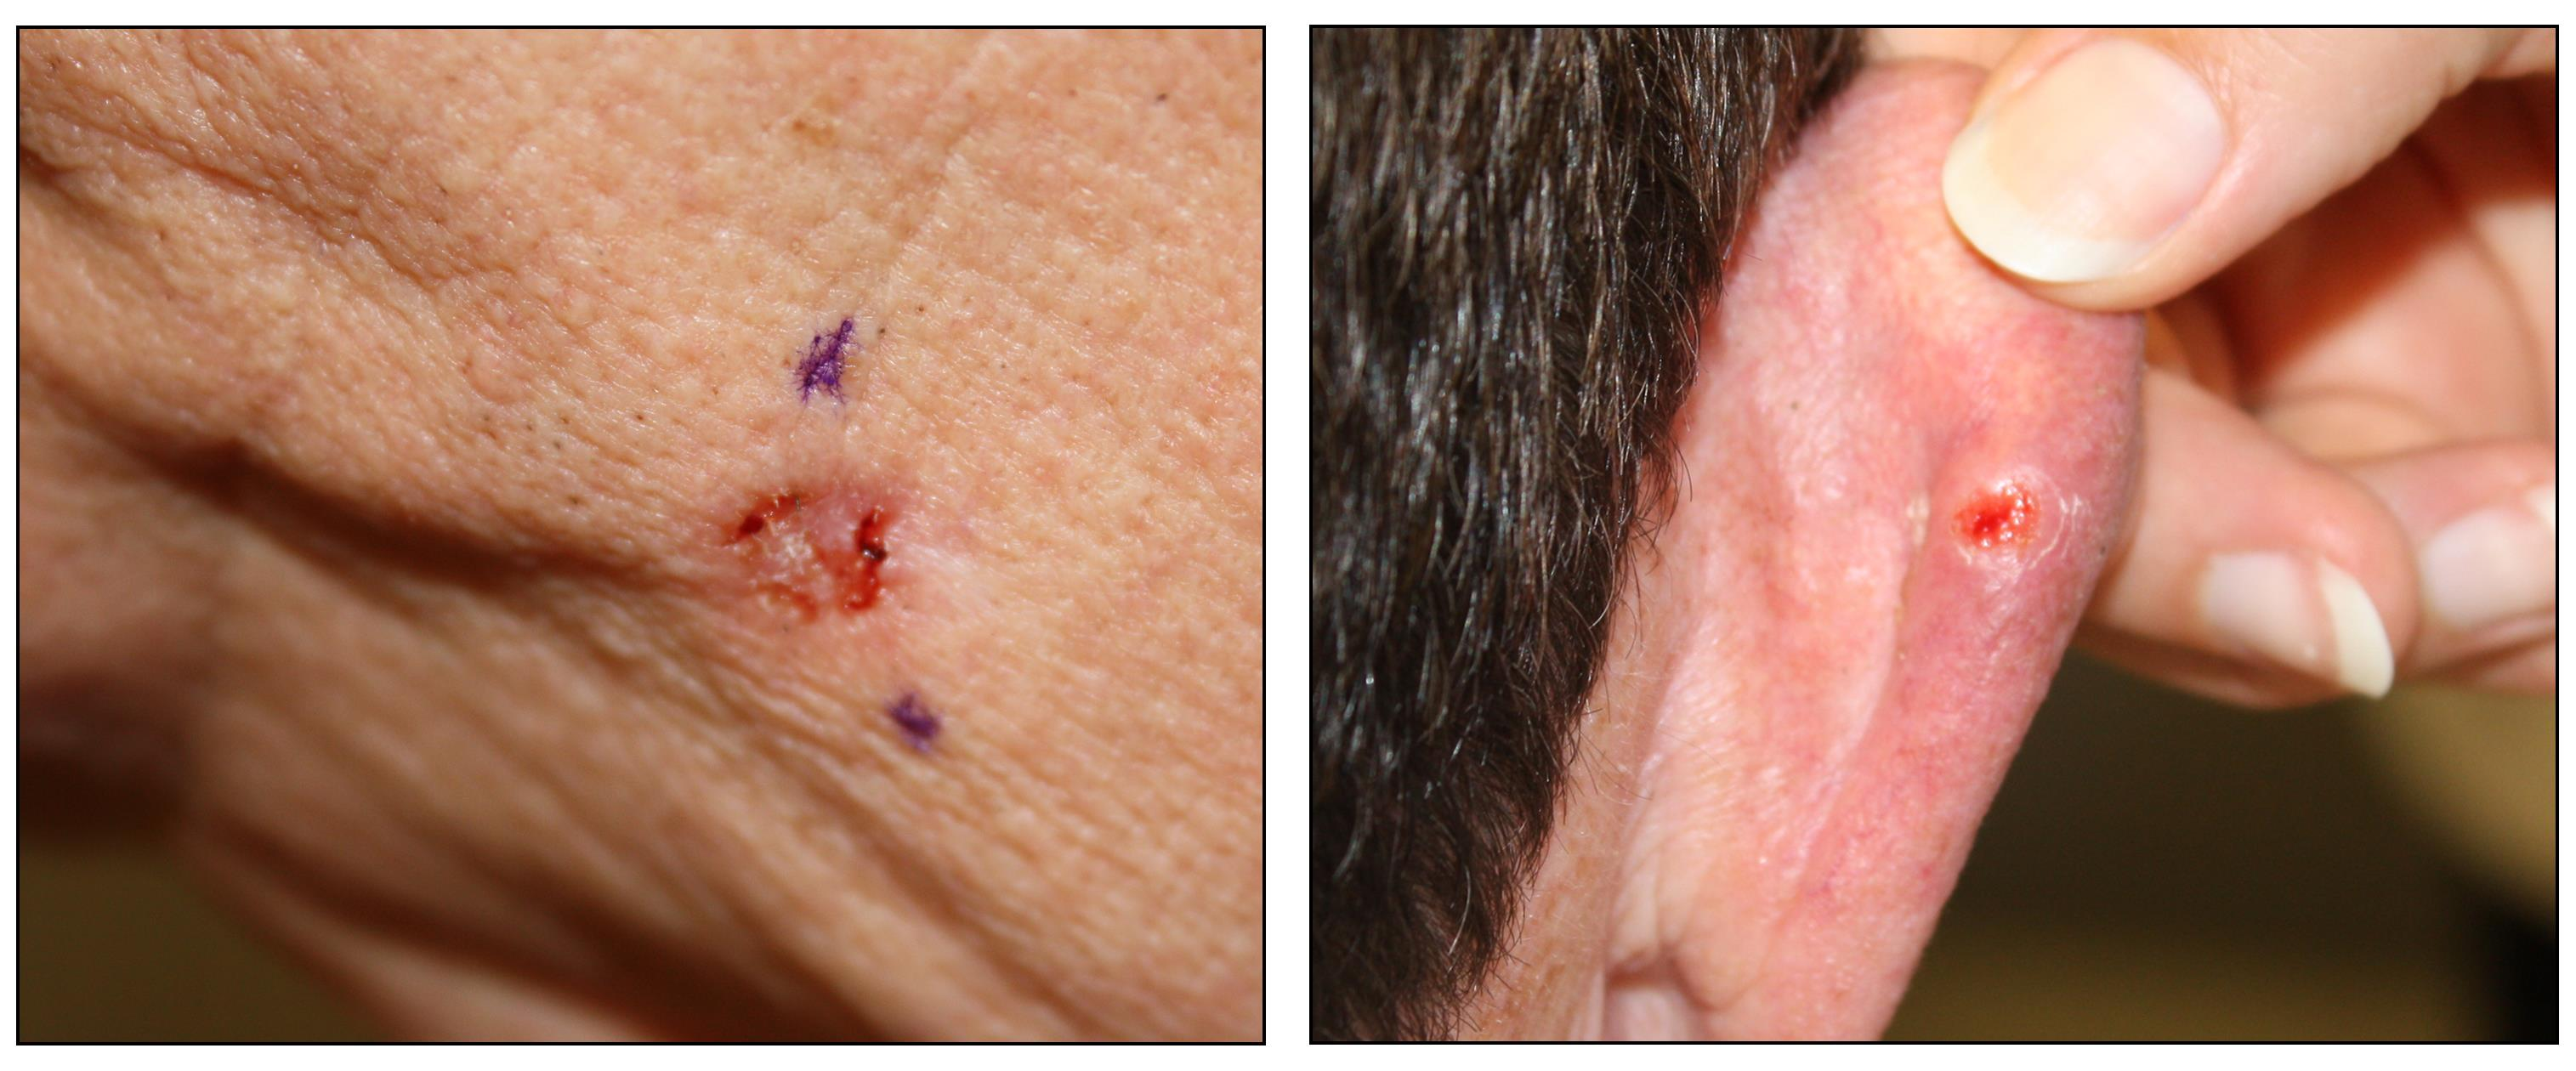 steroid red skin syndrome and skin remedies